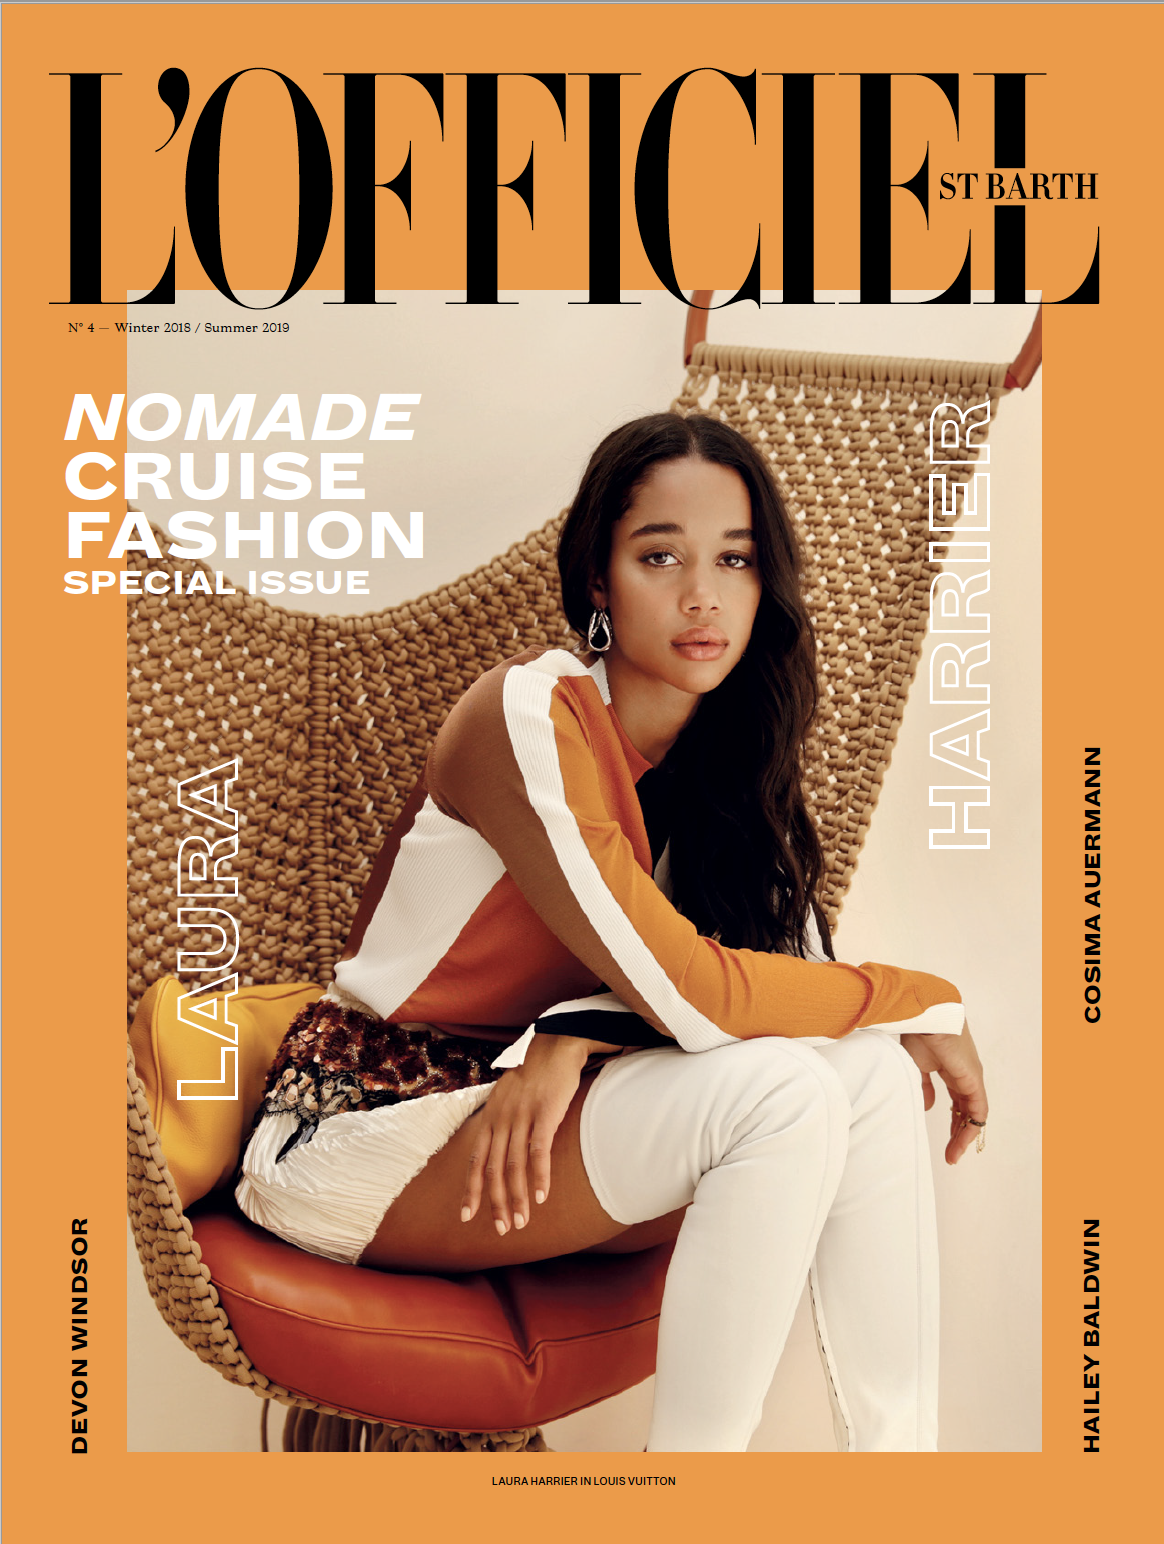 L'Officiel St Barth